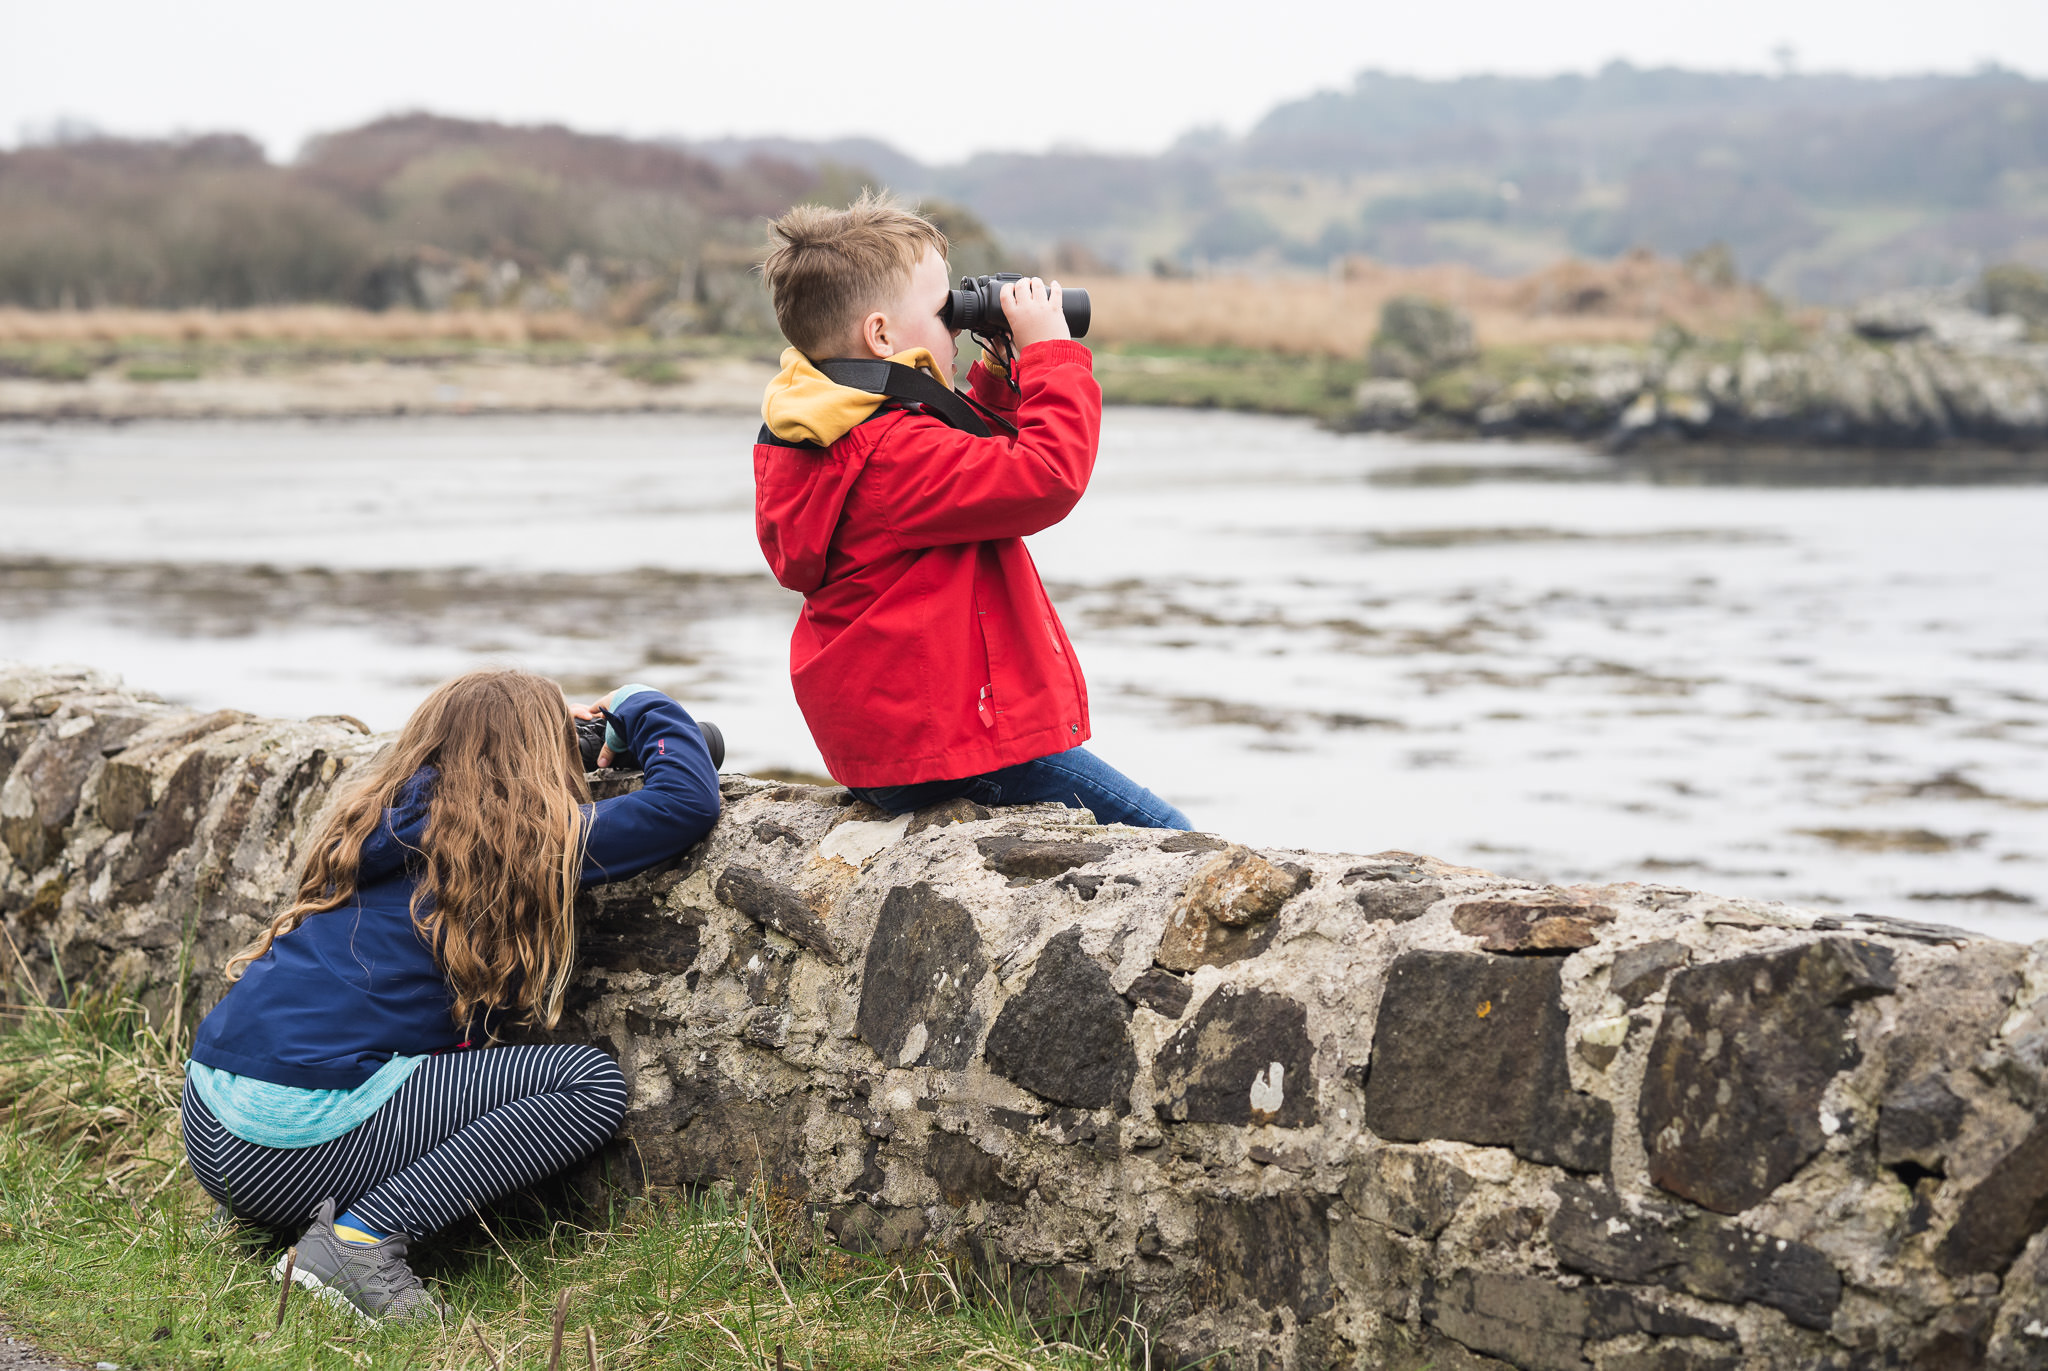 I noticed my daughter ducking down occasionally to steady her binoculars on the wall. Sure enough as soon as I got my camera out, she ducked down again!